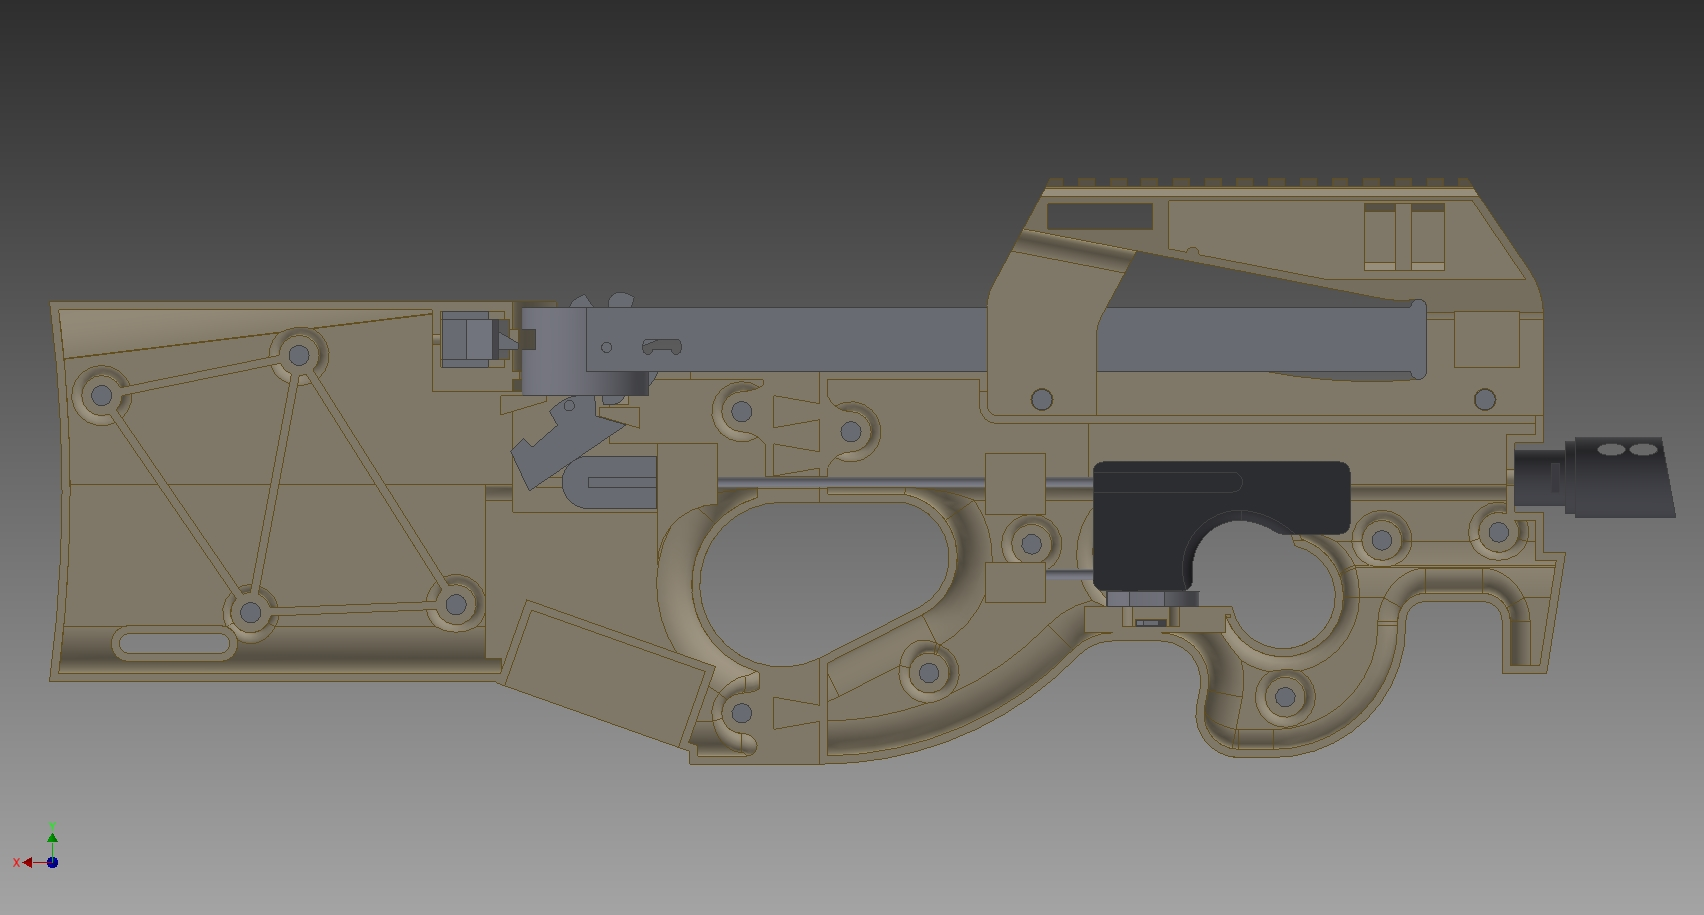 Automatic Rubber Band Gun Plans